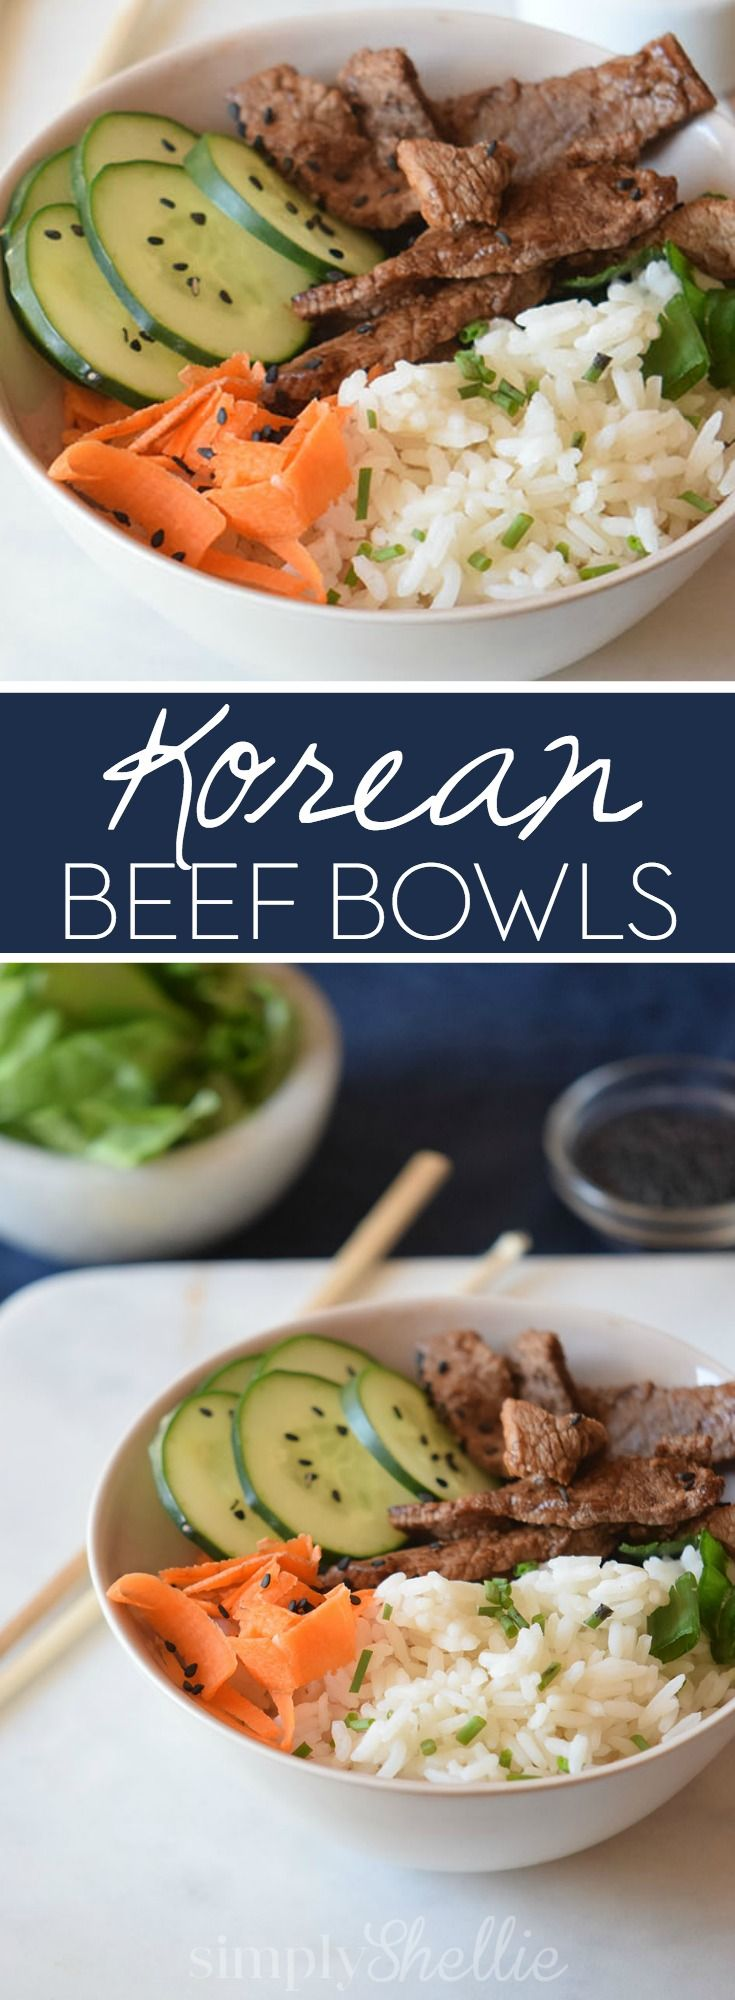 These Korean Beef Bowls are a simple weeknight dinner idea. Stove to table in under 30 minutes. Plus one pot and one bowl make for easy cleanup!